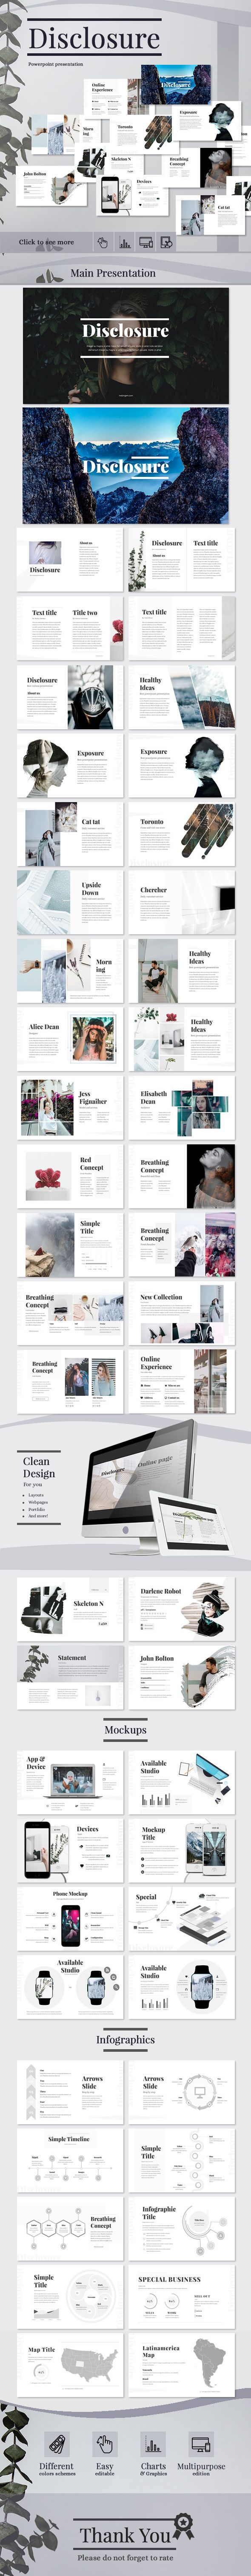 Disclosure business powerpoint templates template and creative buy disclosure by melongem on graphicriver disclosure powerpoint presentation get the disclosure template this is an unique powerpoint presentation can be toneelgroepblik Gallery